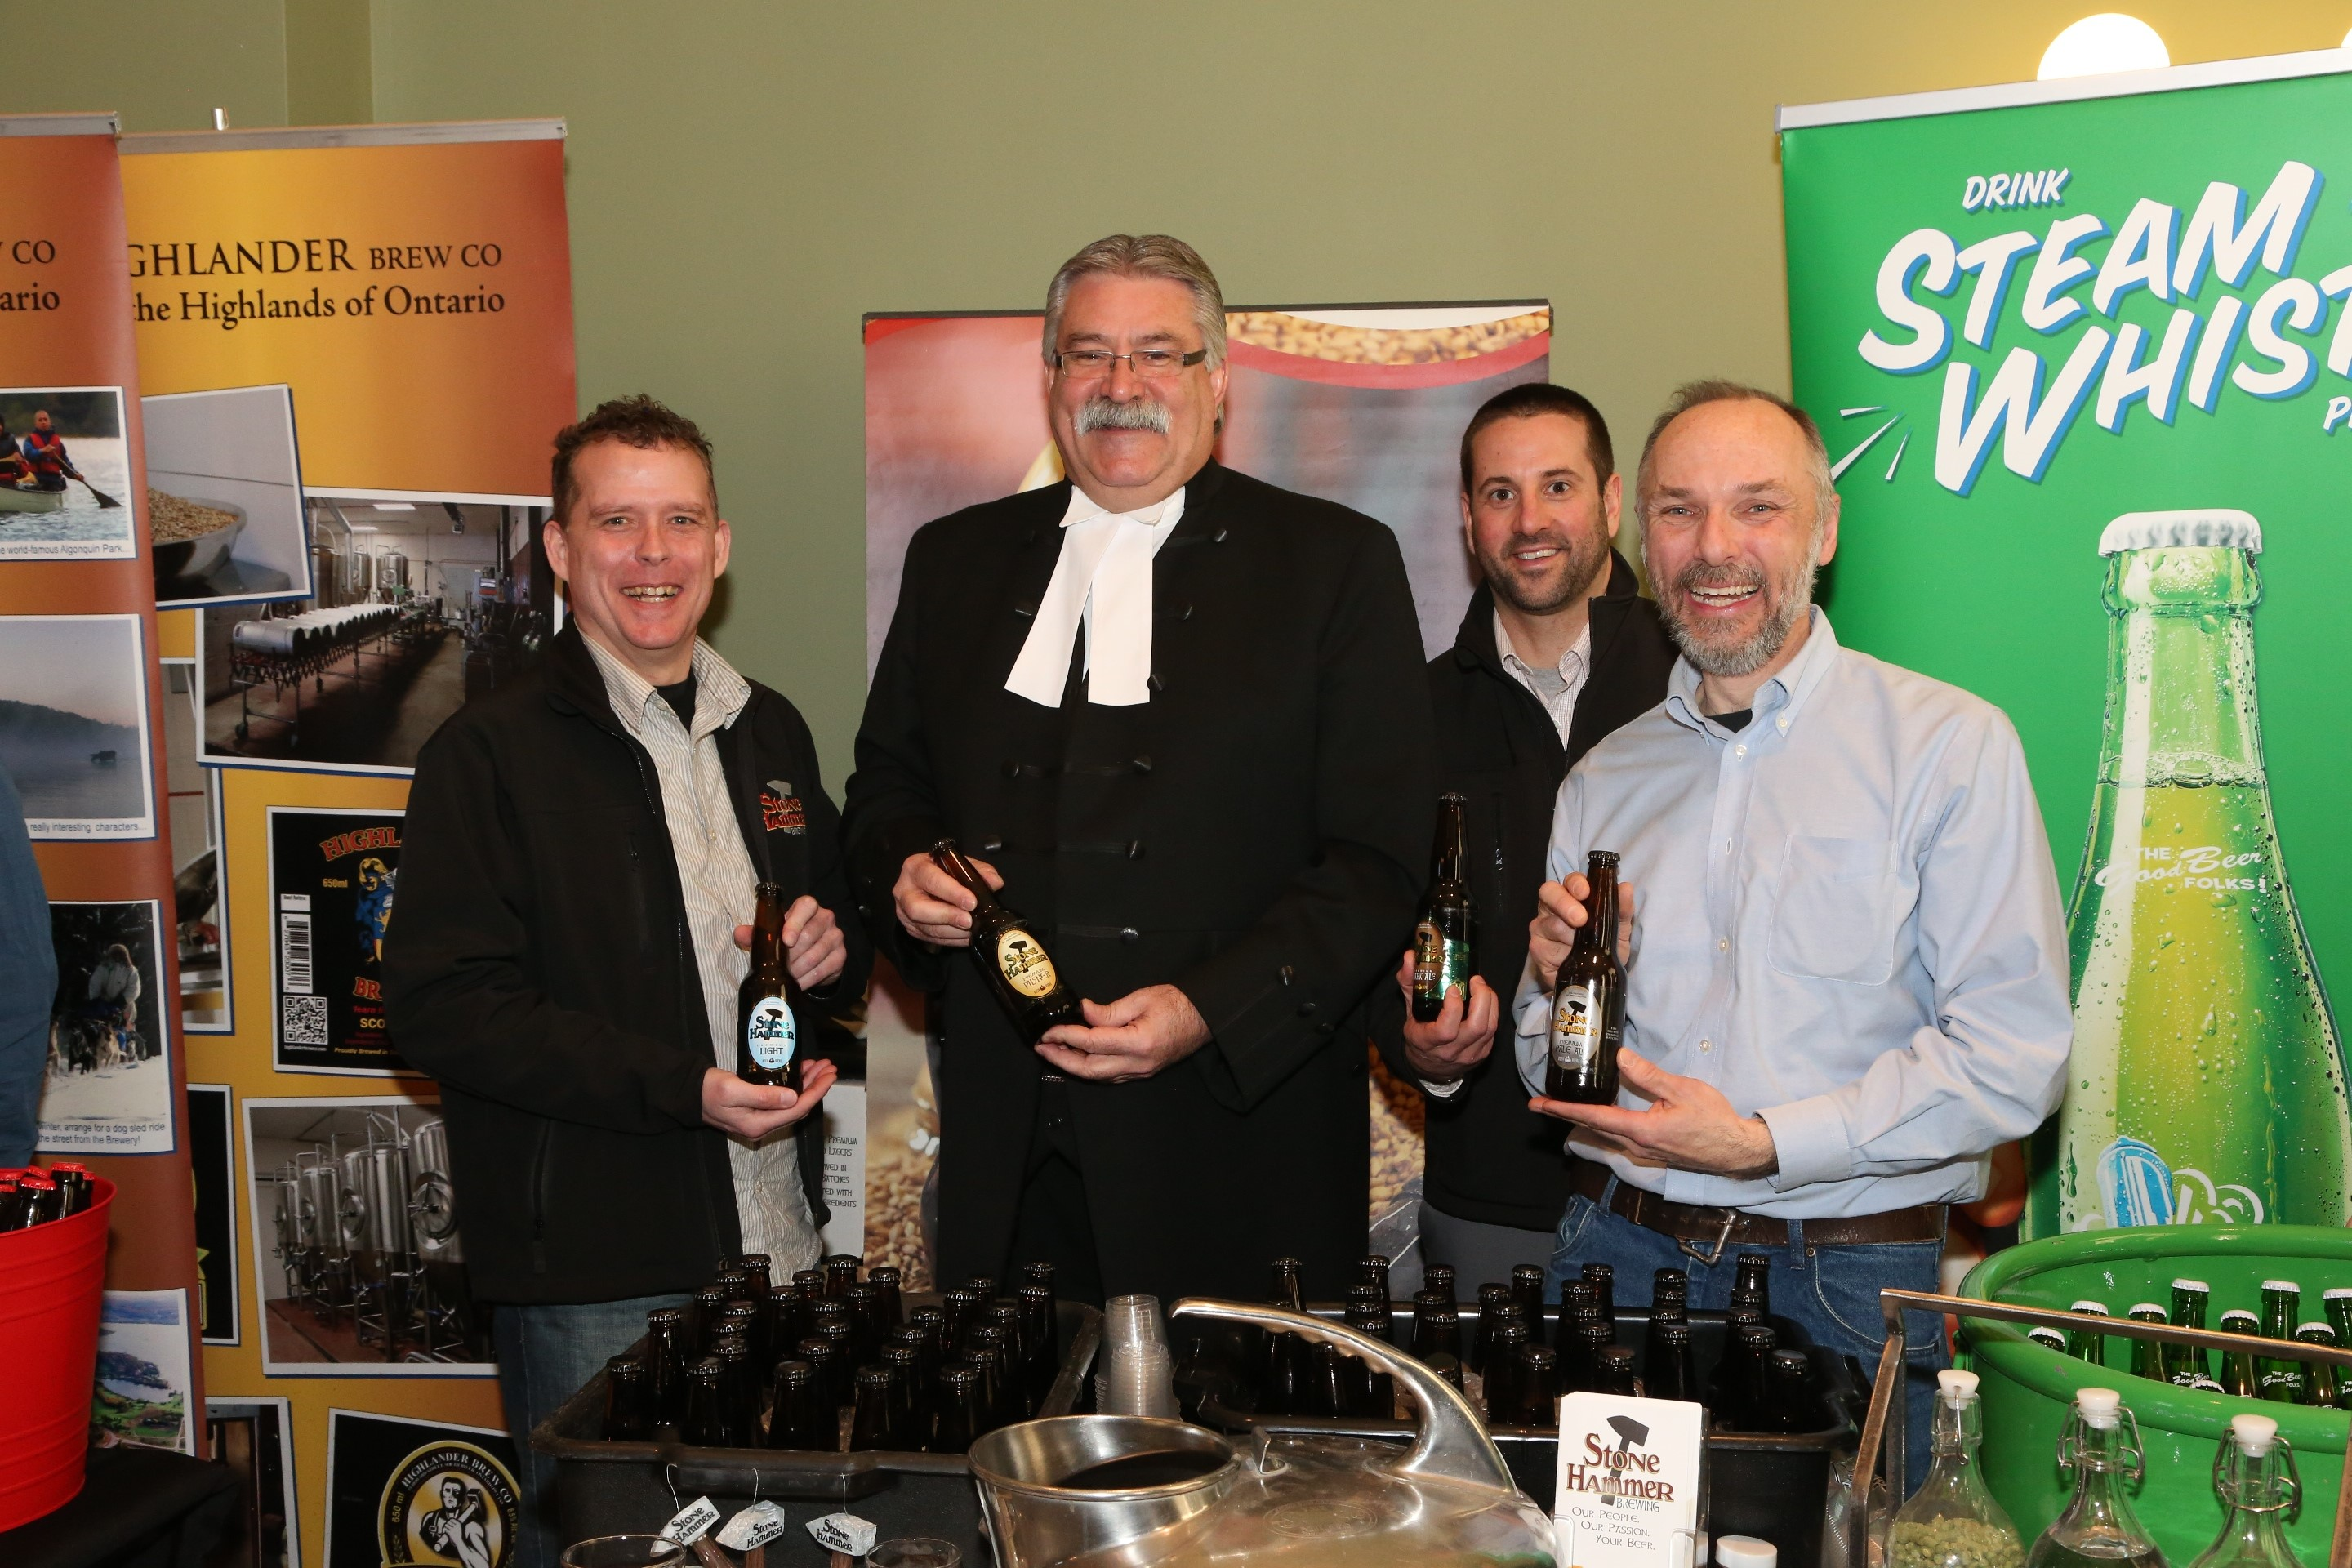 Ontario Speaker Of The House Sampling Local Craft Beer